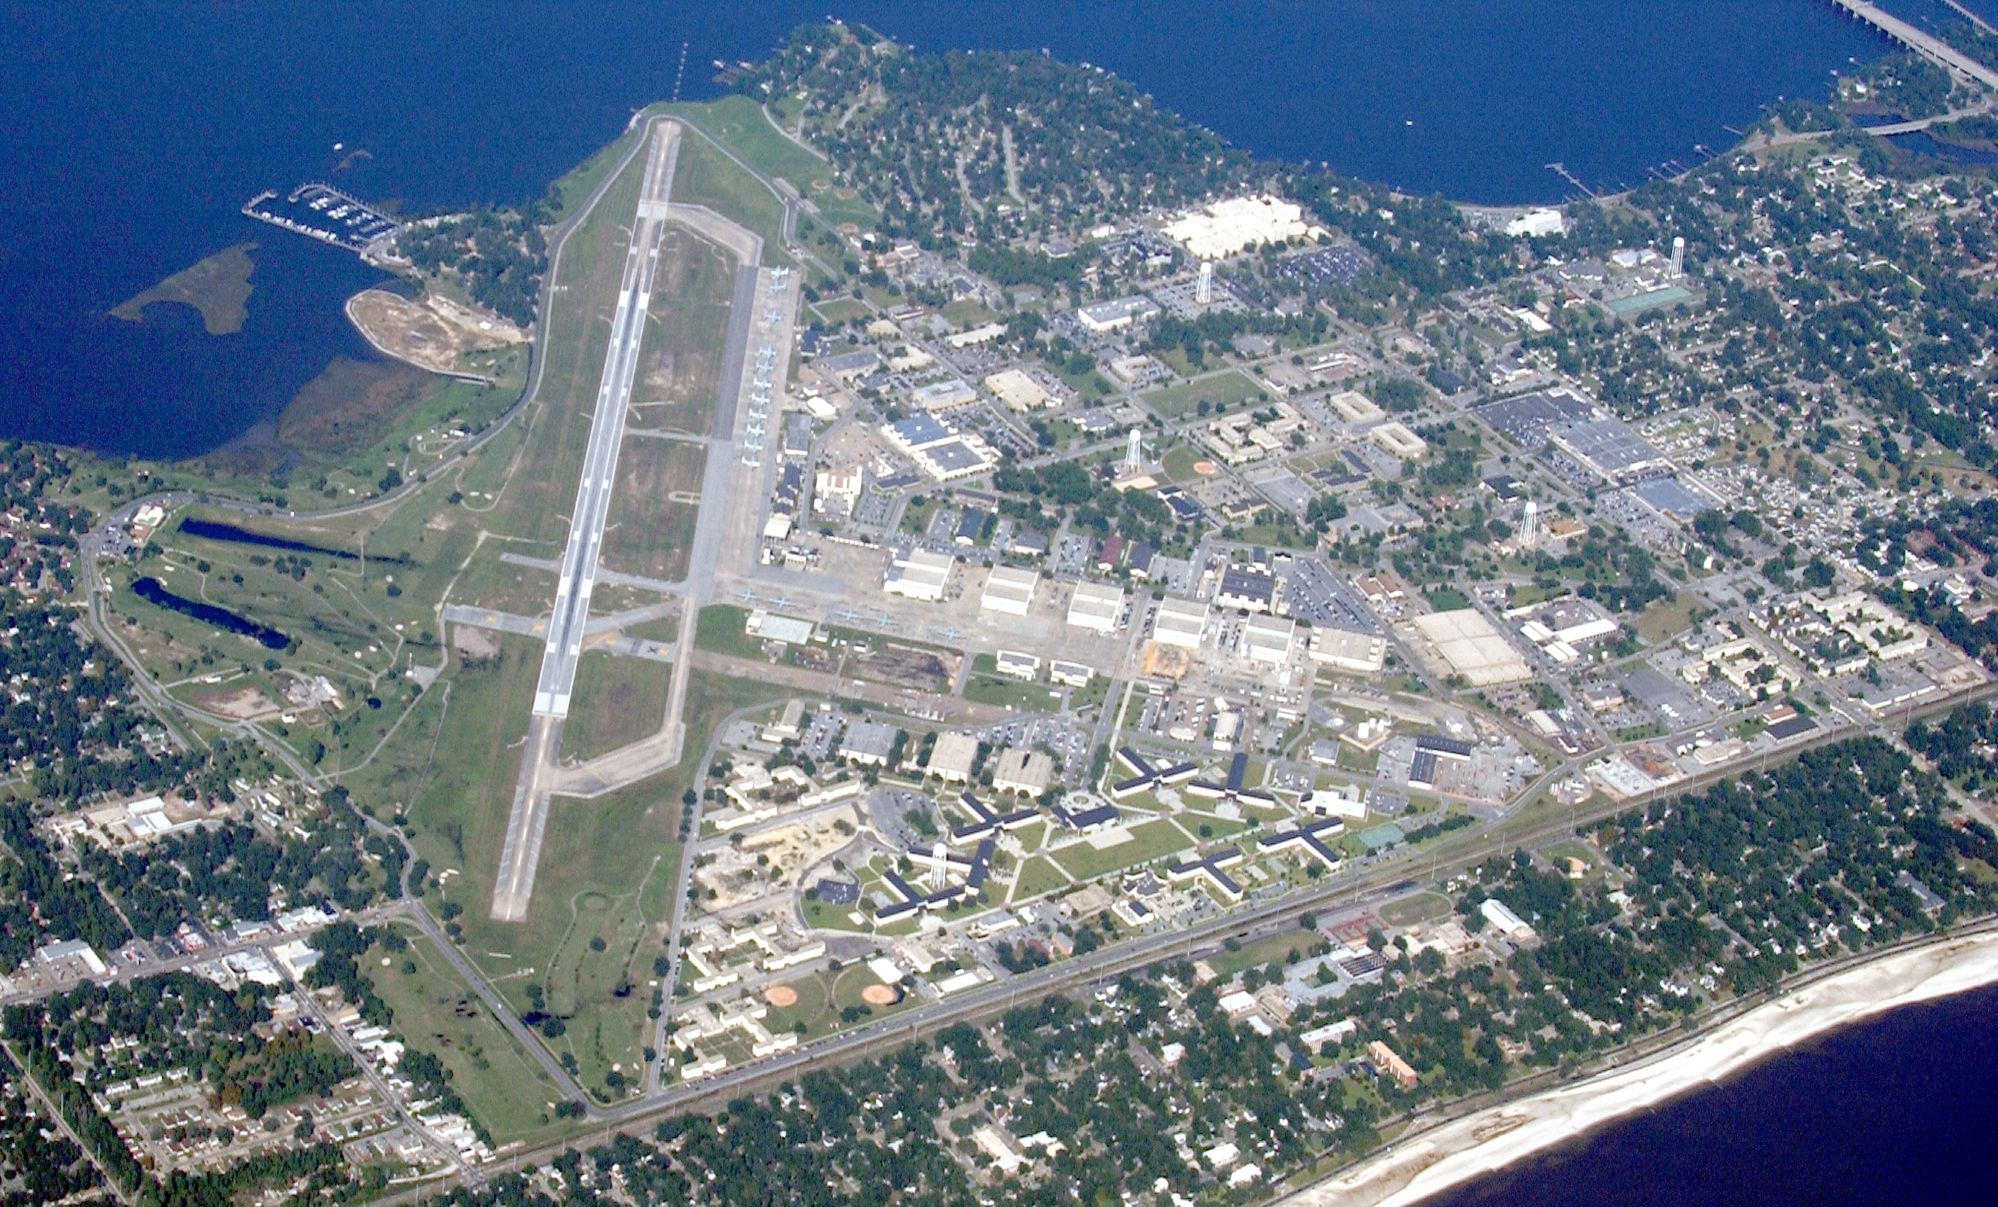 keesler afb Google Search Air force bases, Us air